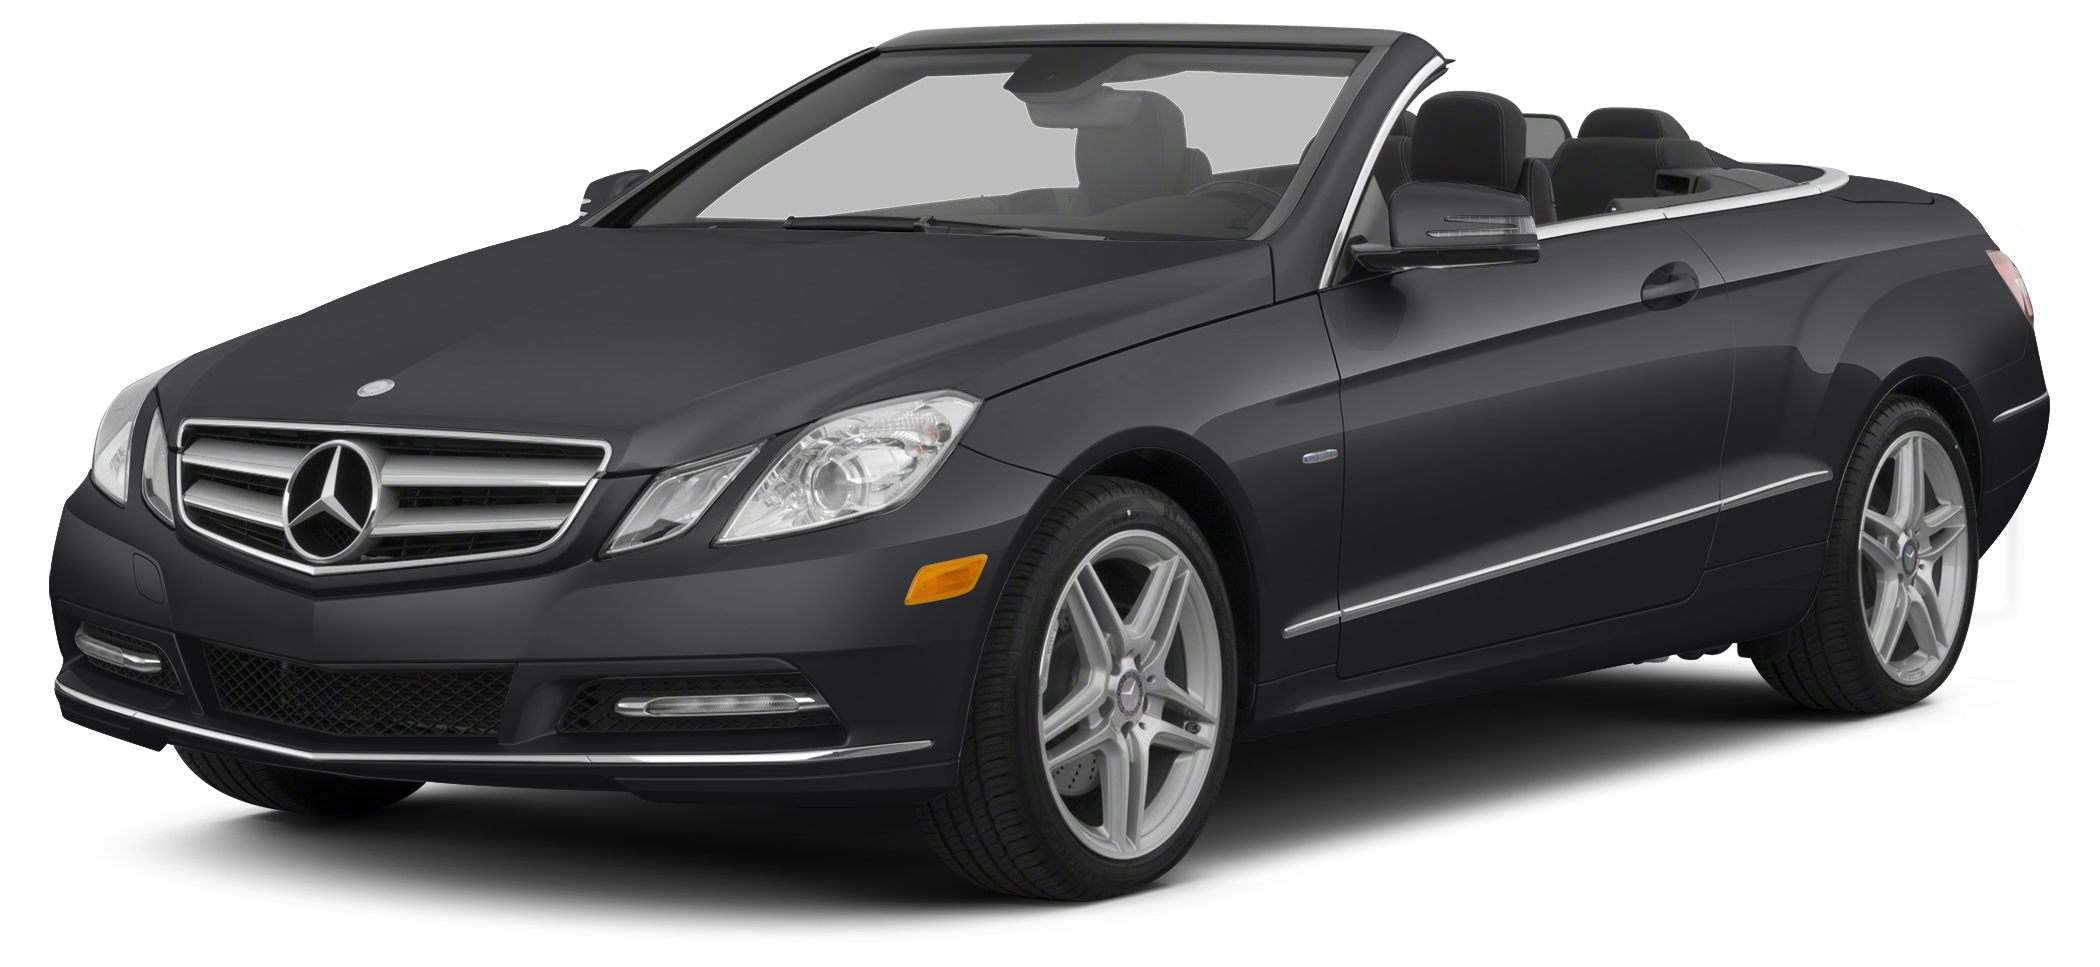 2013 MERCEDES E-Class E350 This one owner 2013 E350A Cabriolet is a one owner car with just 19k mi